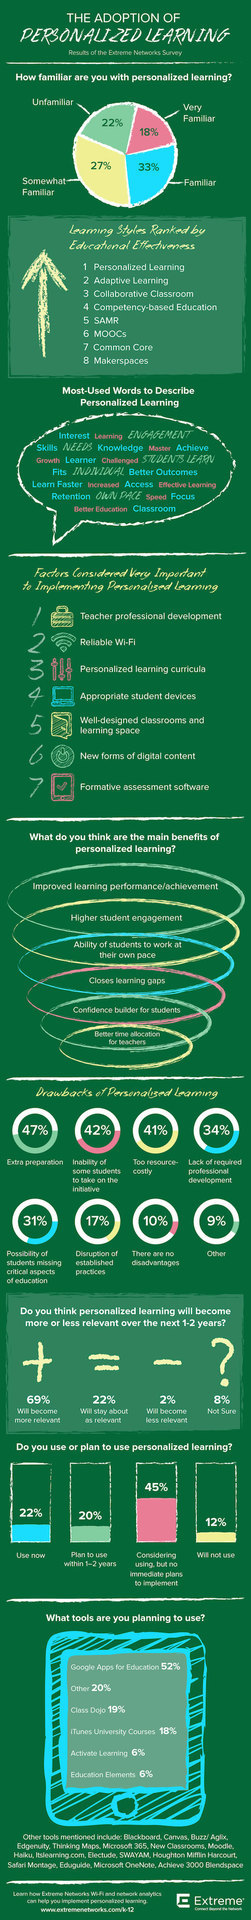 The-Adoption-of-Personalized-Learning-Infographic.jpg